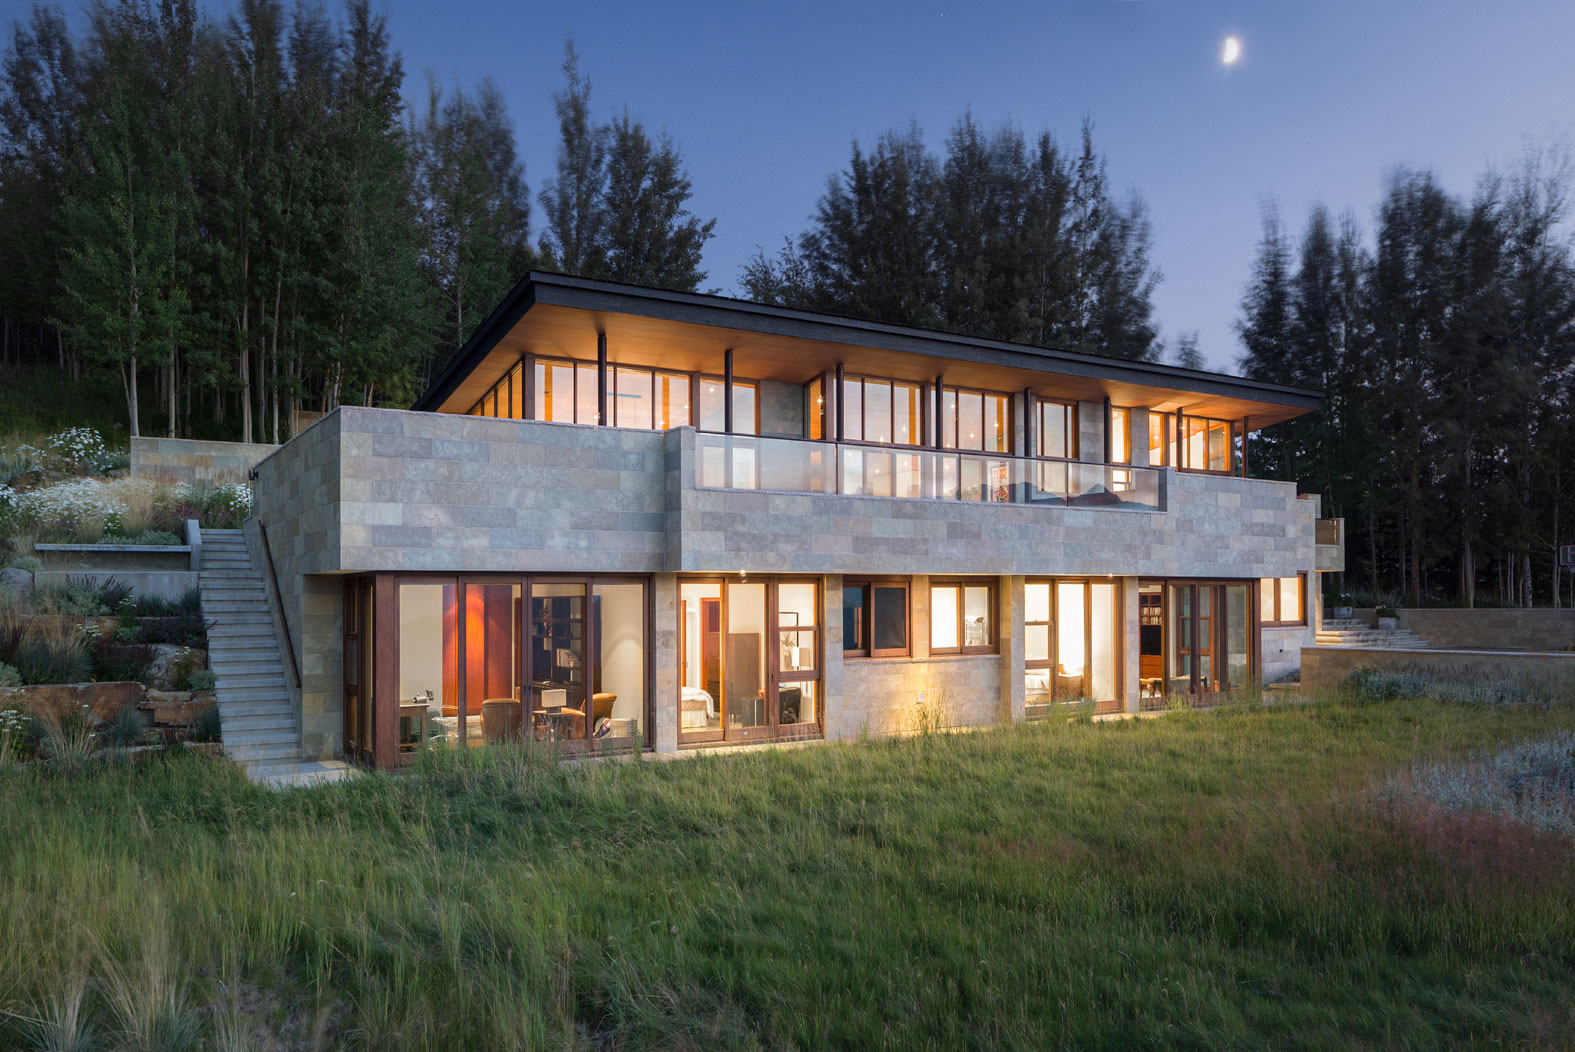 This three-tiered luxury mountain ranch home is dramatically built into a hillside overlooking Wyoming's spectacular Gros Ventre Wilderness.